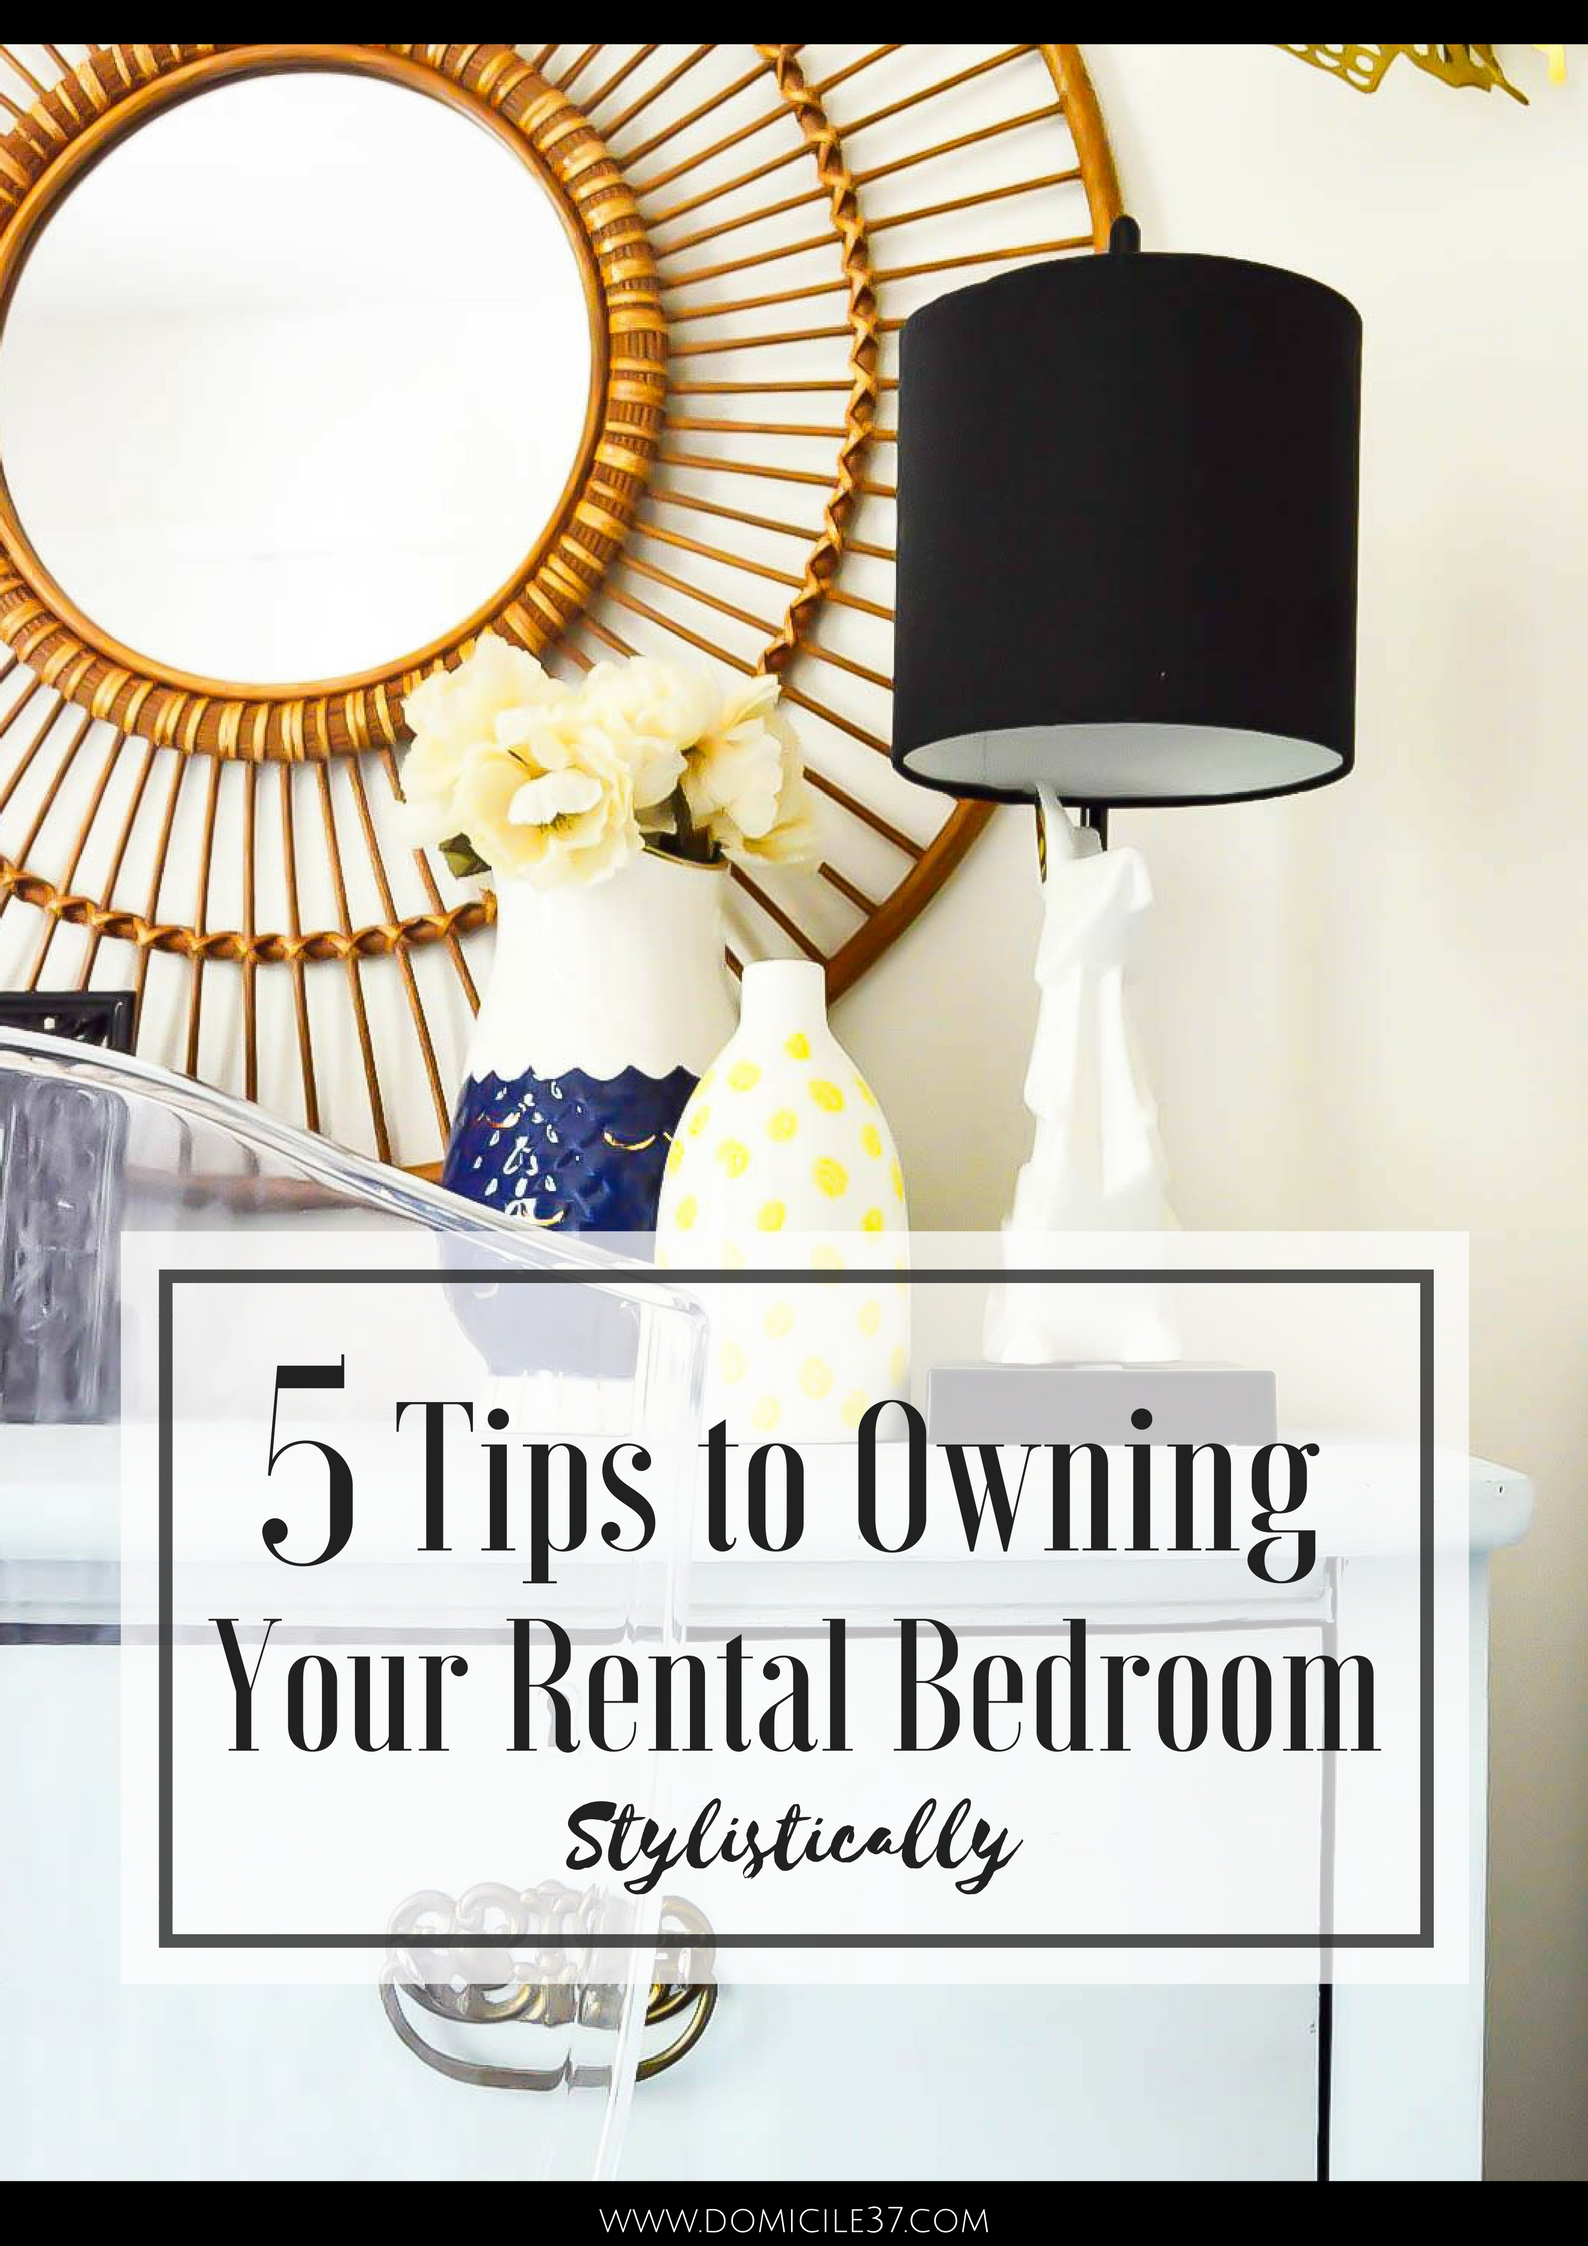 5 Tips to Creating a Stylish Rental Bedroom | Rental Bedroom Hacks | Boho style bedrooms | Bohemian style | Bohemian eclectic bedroom | rug headboard